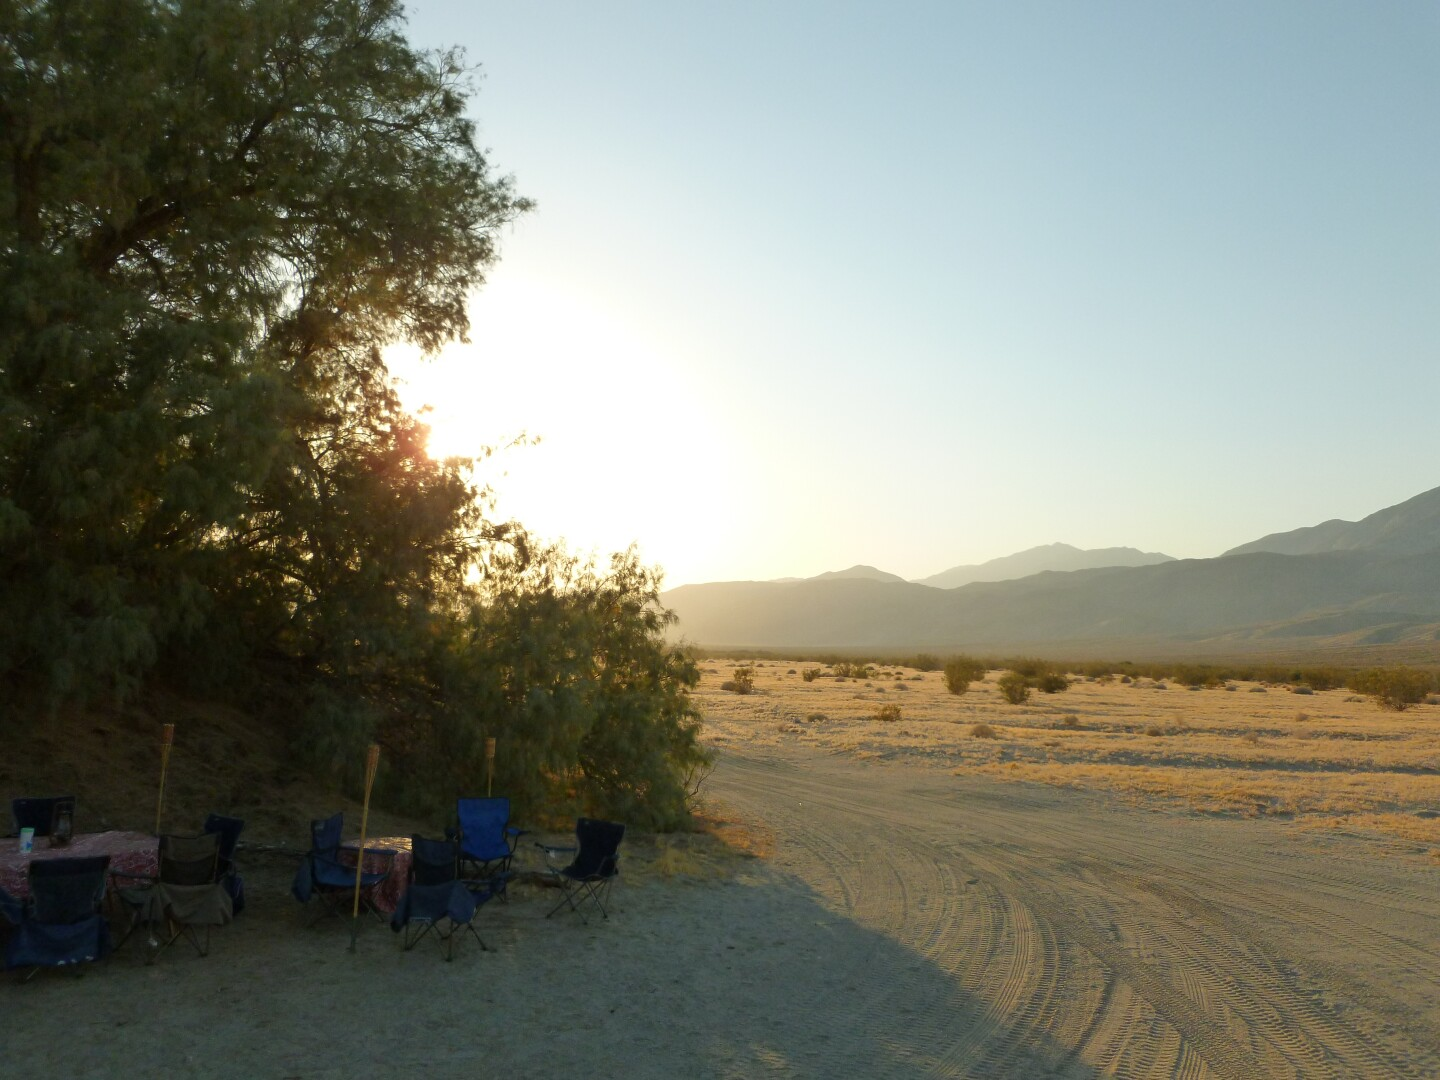 A roadside camp in a desert set up under some shade from local trees.